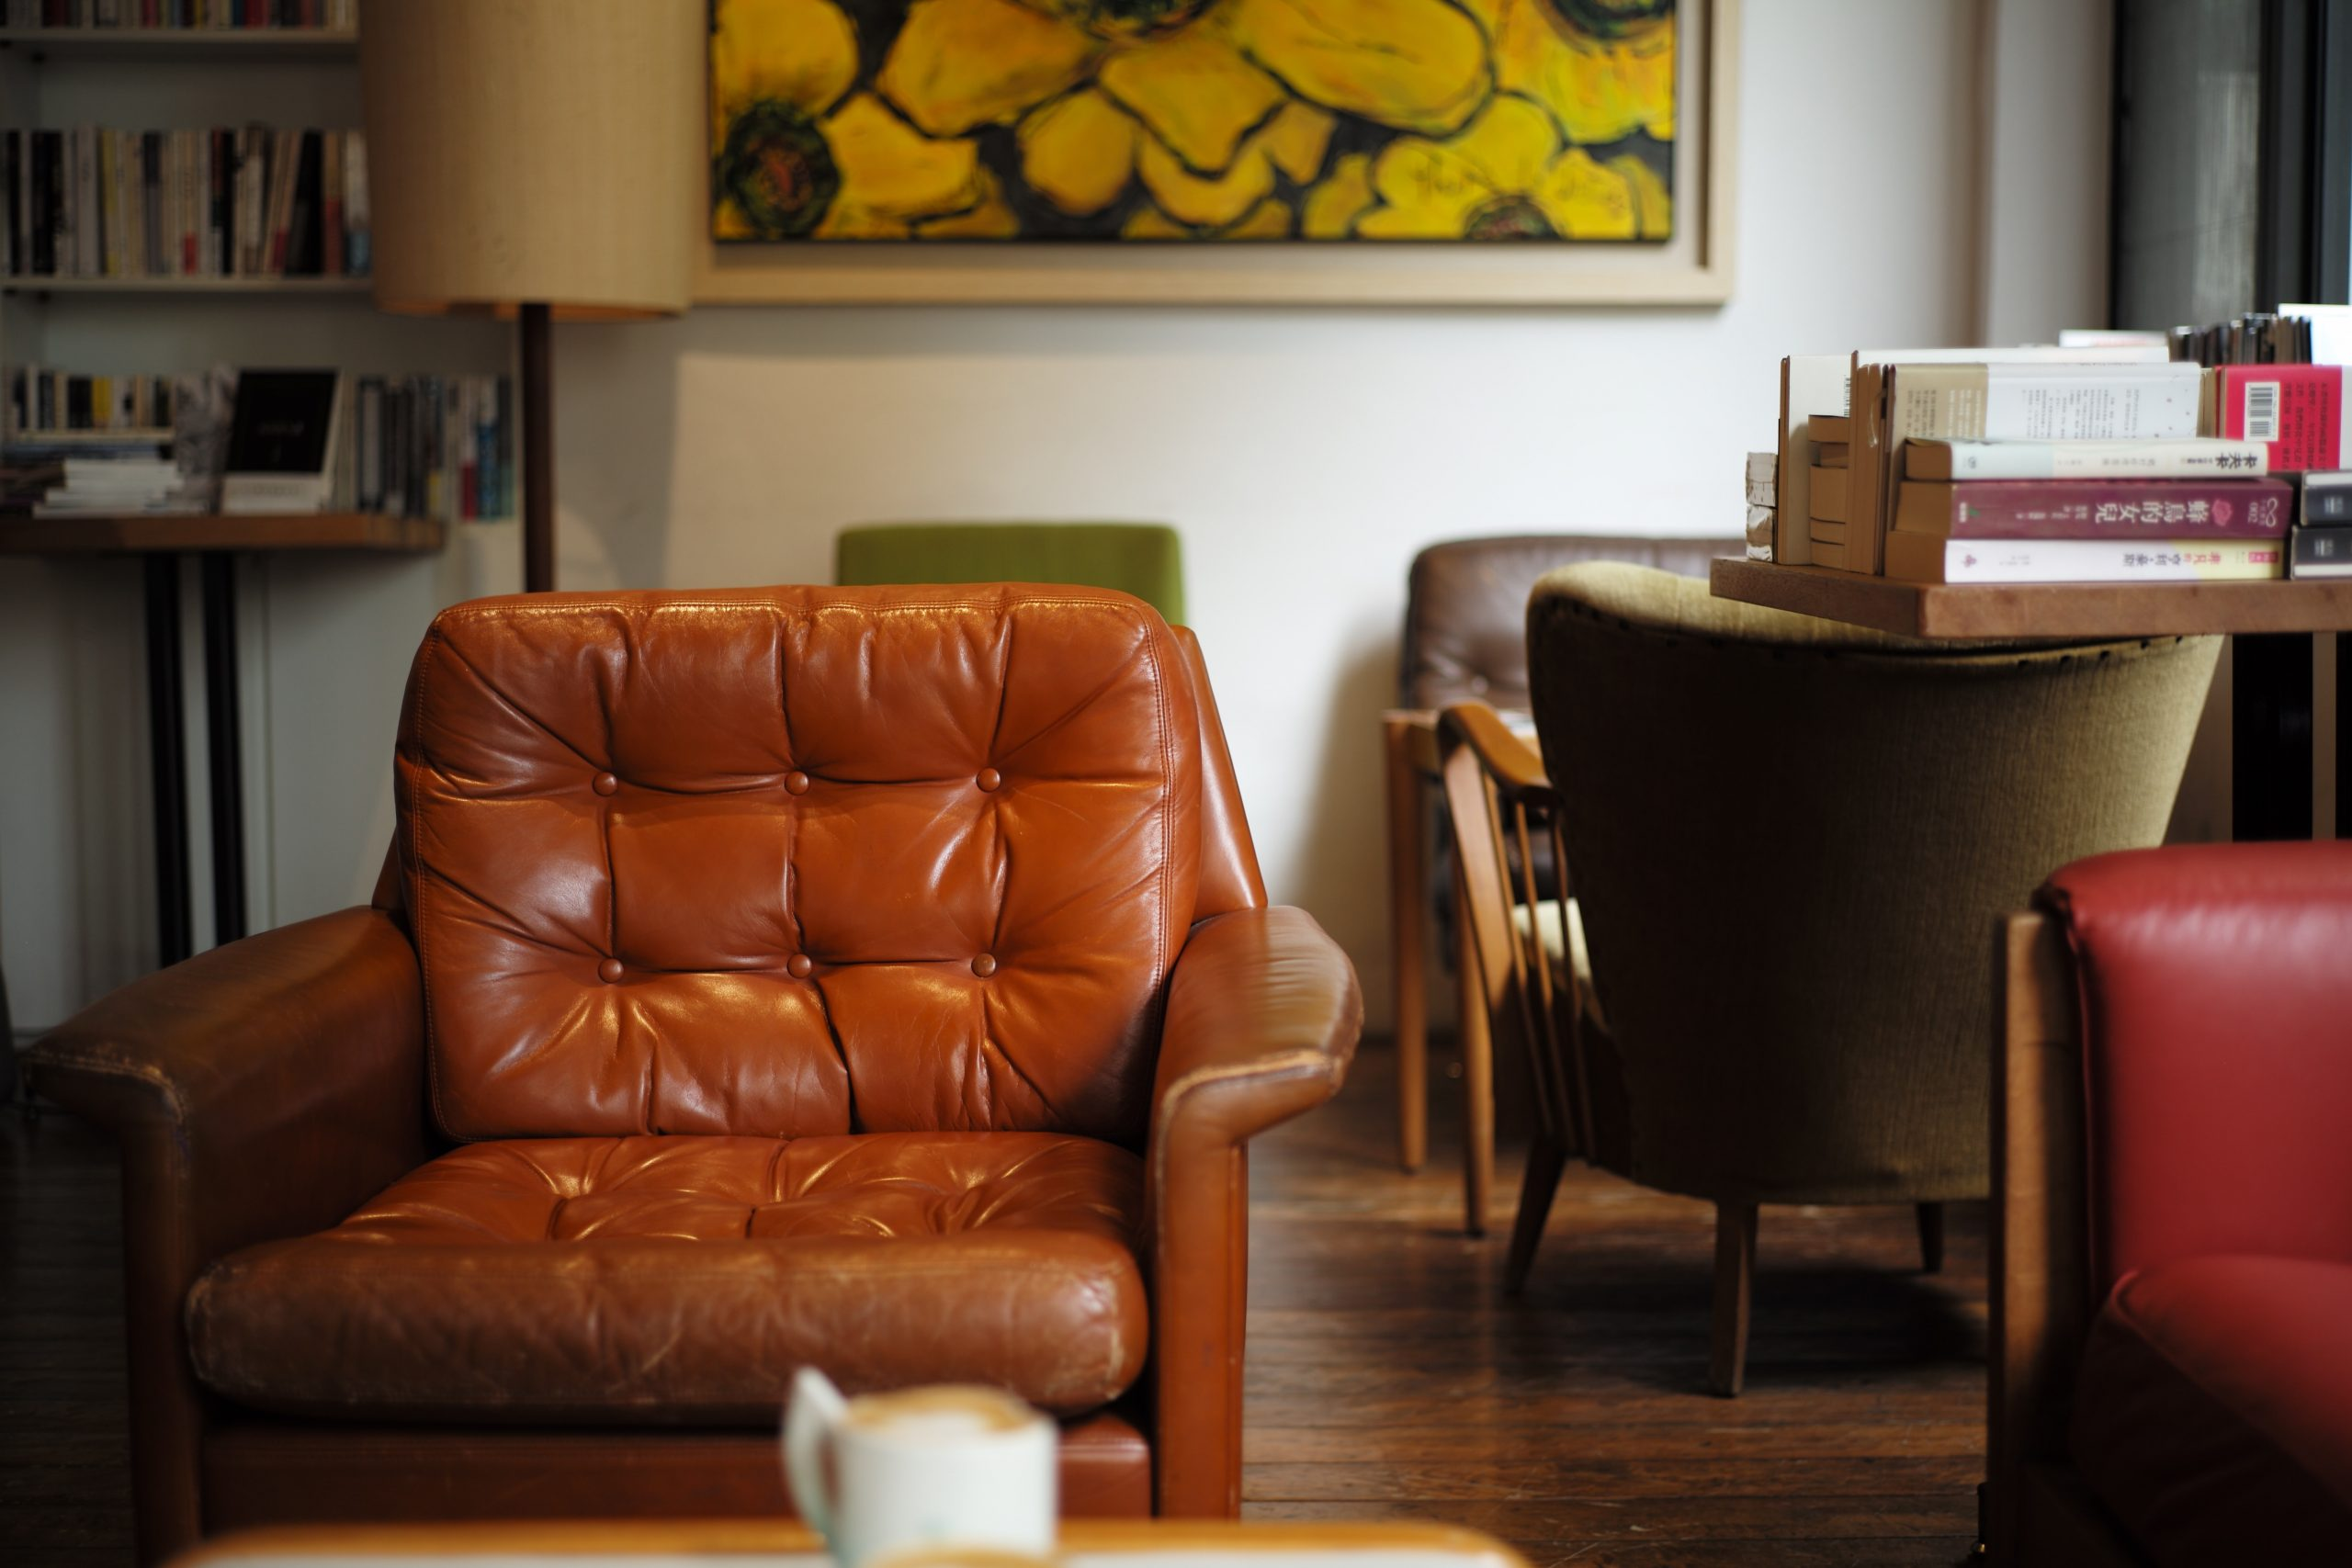 Leather Furniture A Trend That Gains Popularity